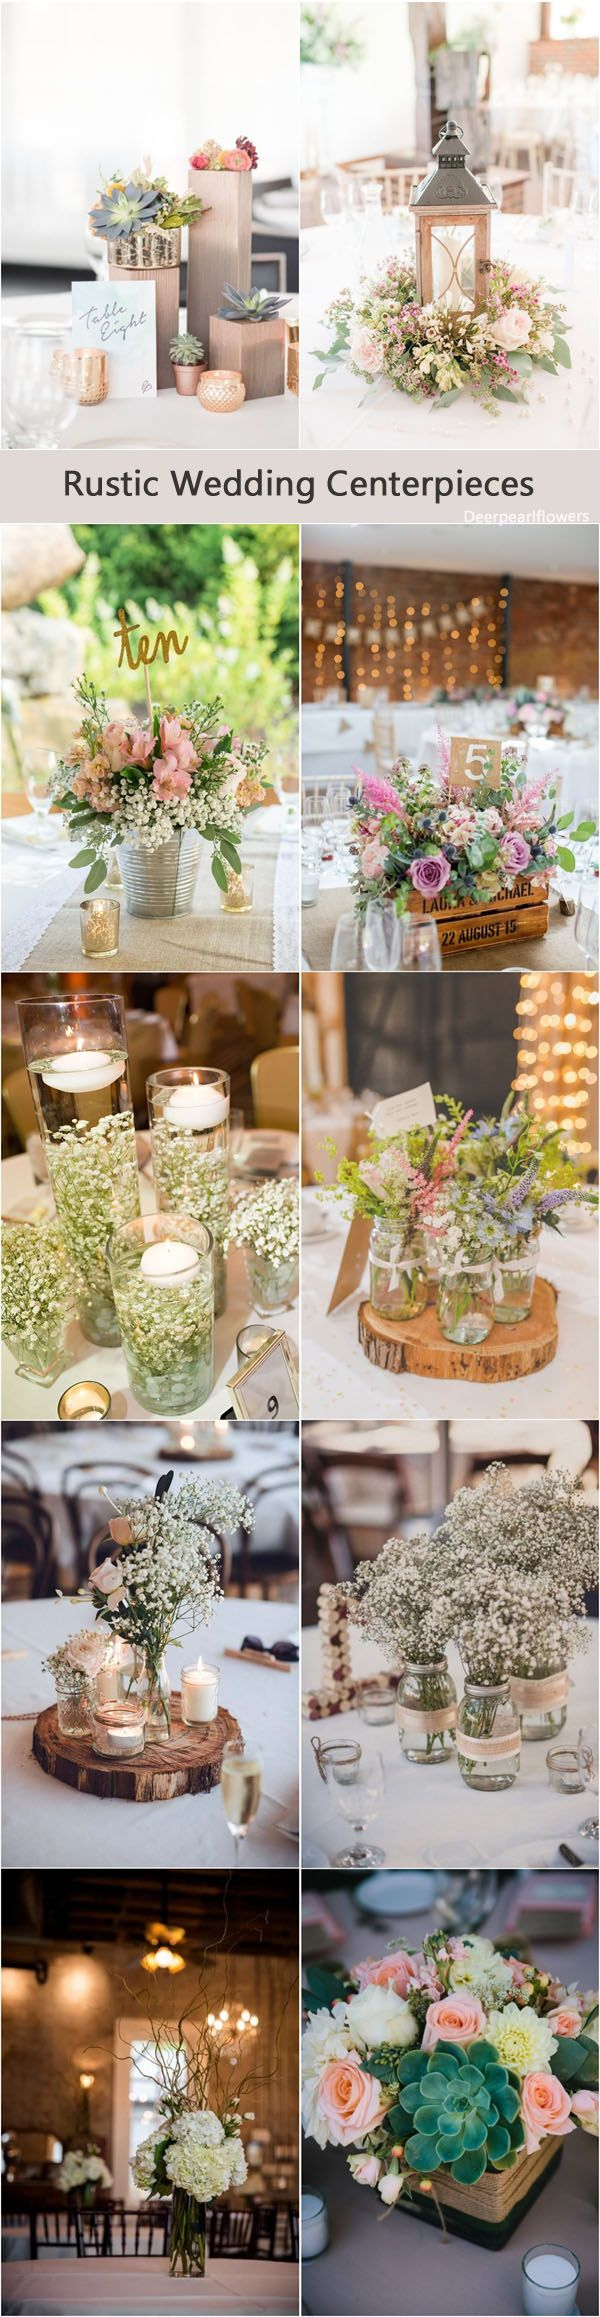 Wedding trends - Rustic wedding centerpiece ideas / http://www.deerpearlflowers.com/rustic-wedding-details-and-ideas/